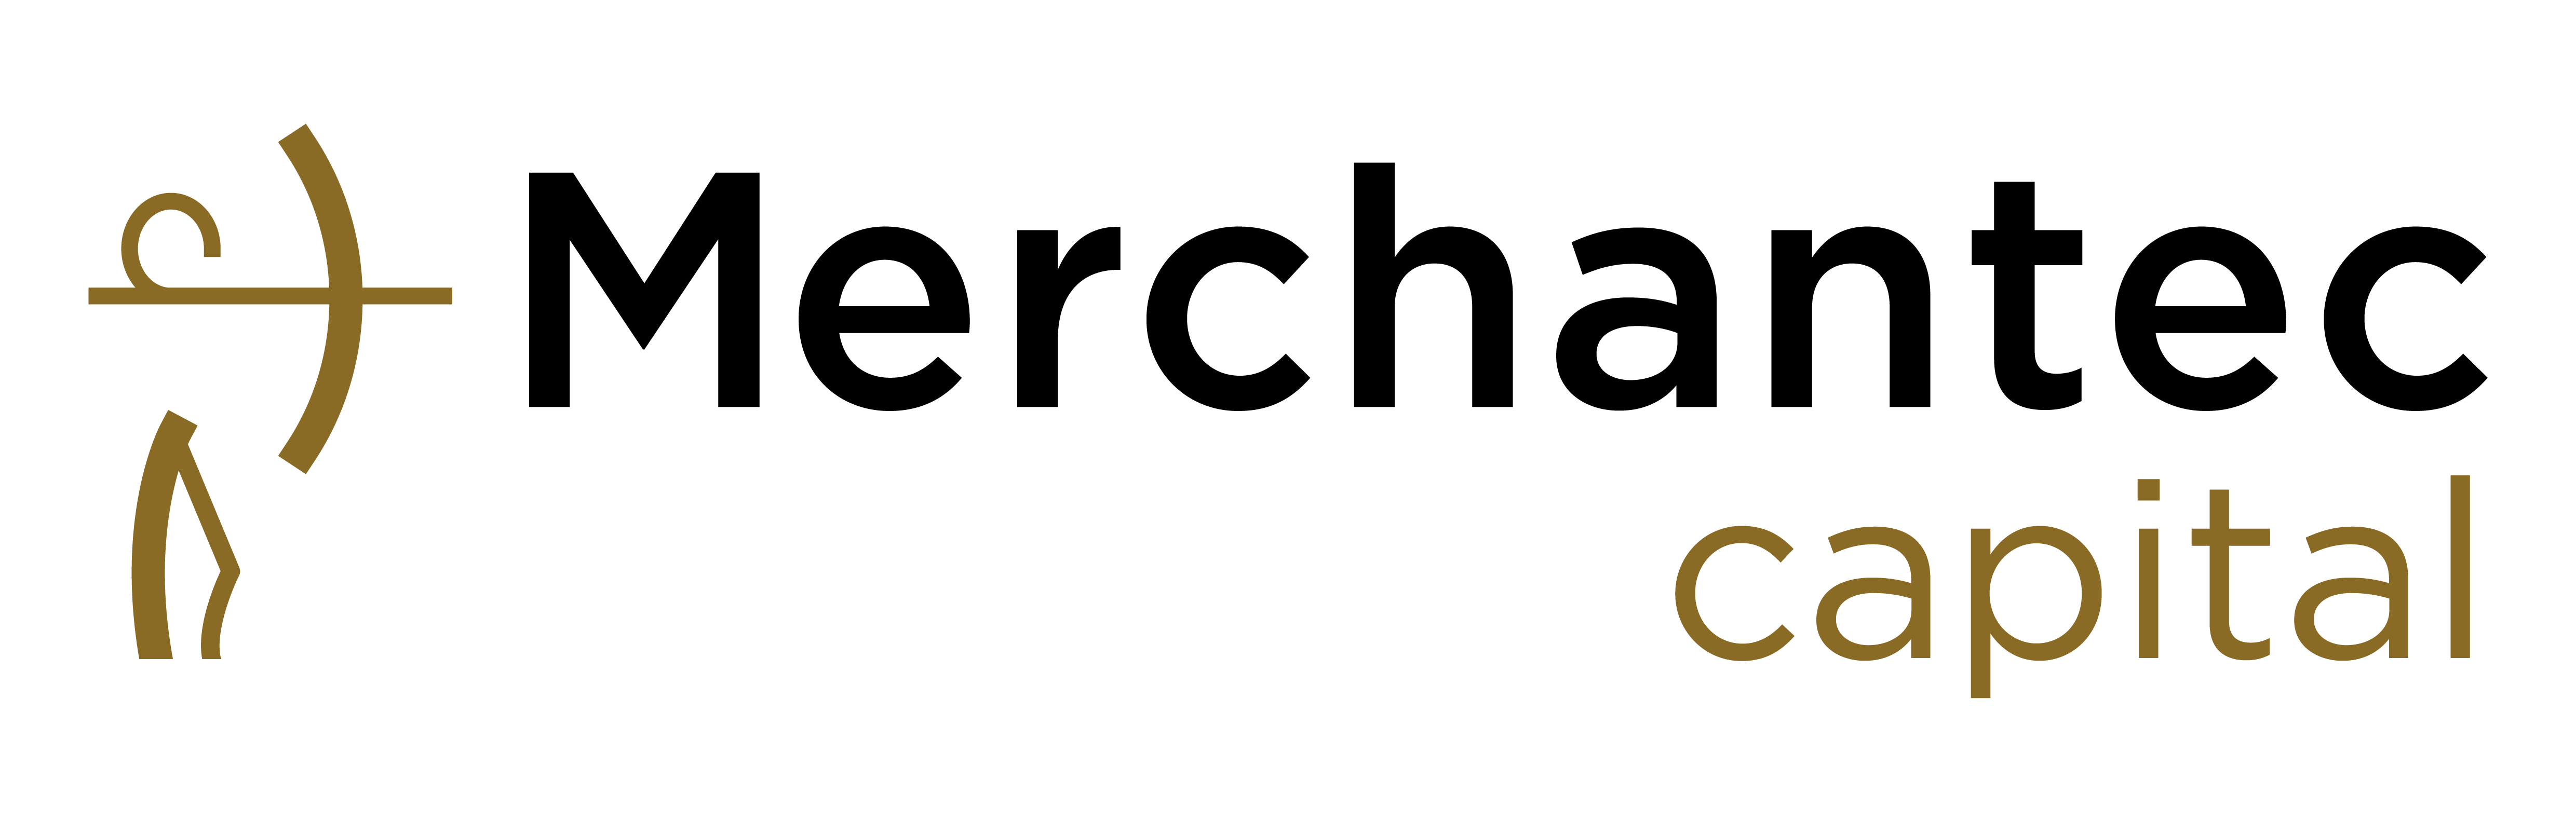 Merchantec Capital